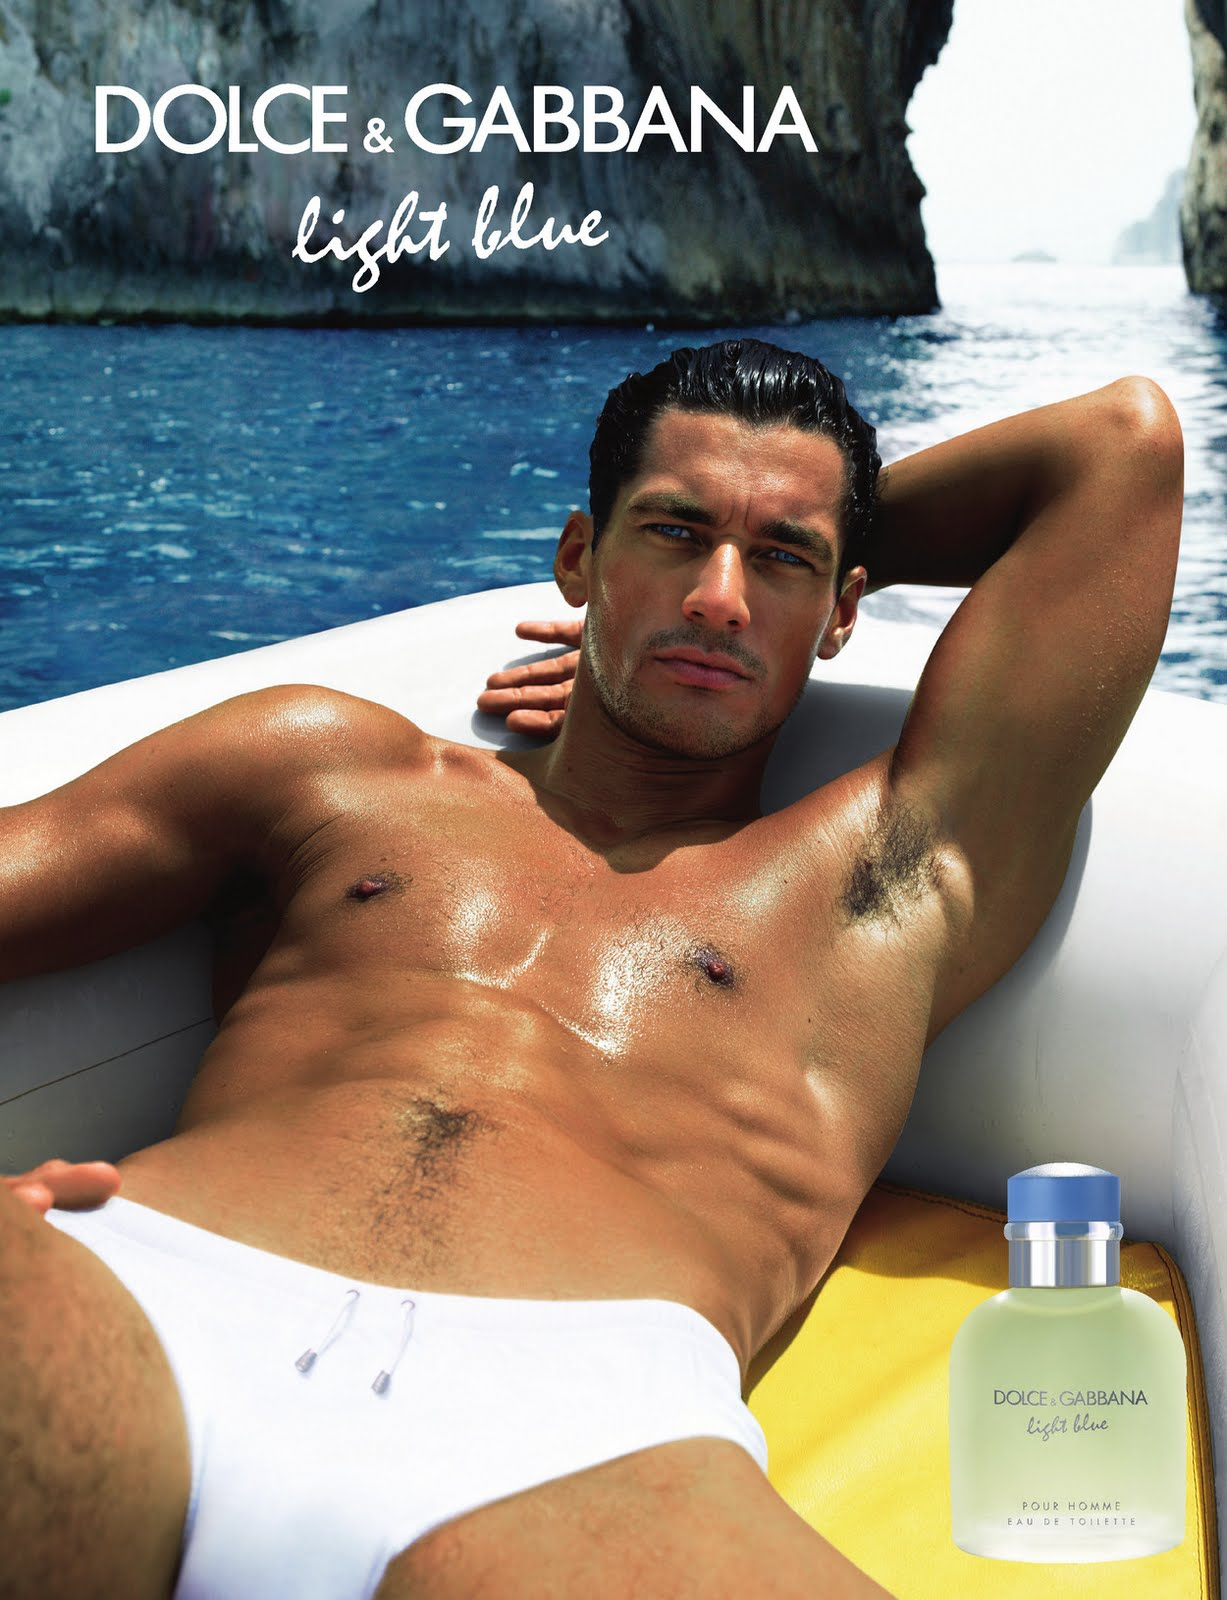 http://3.bp.blogspot.com/-kEihA7ATpqE/TzBIyrAg6xI/AAAAAAAABzk/yhDm3dEX5UI/s1600/david-gandy-dg-light-blue-lying-down.jpg